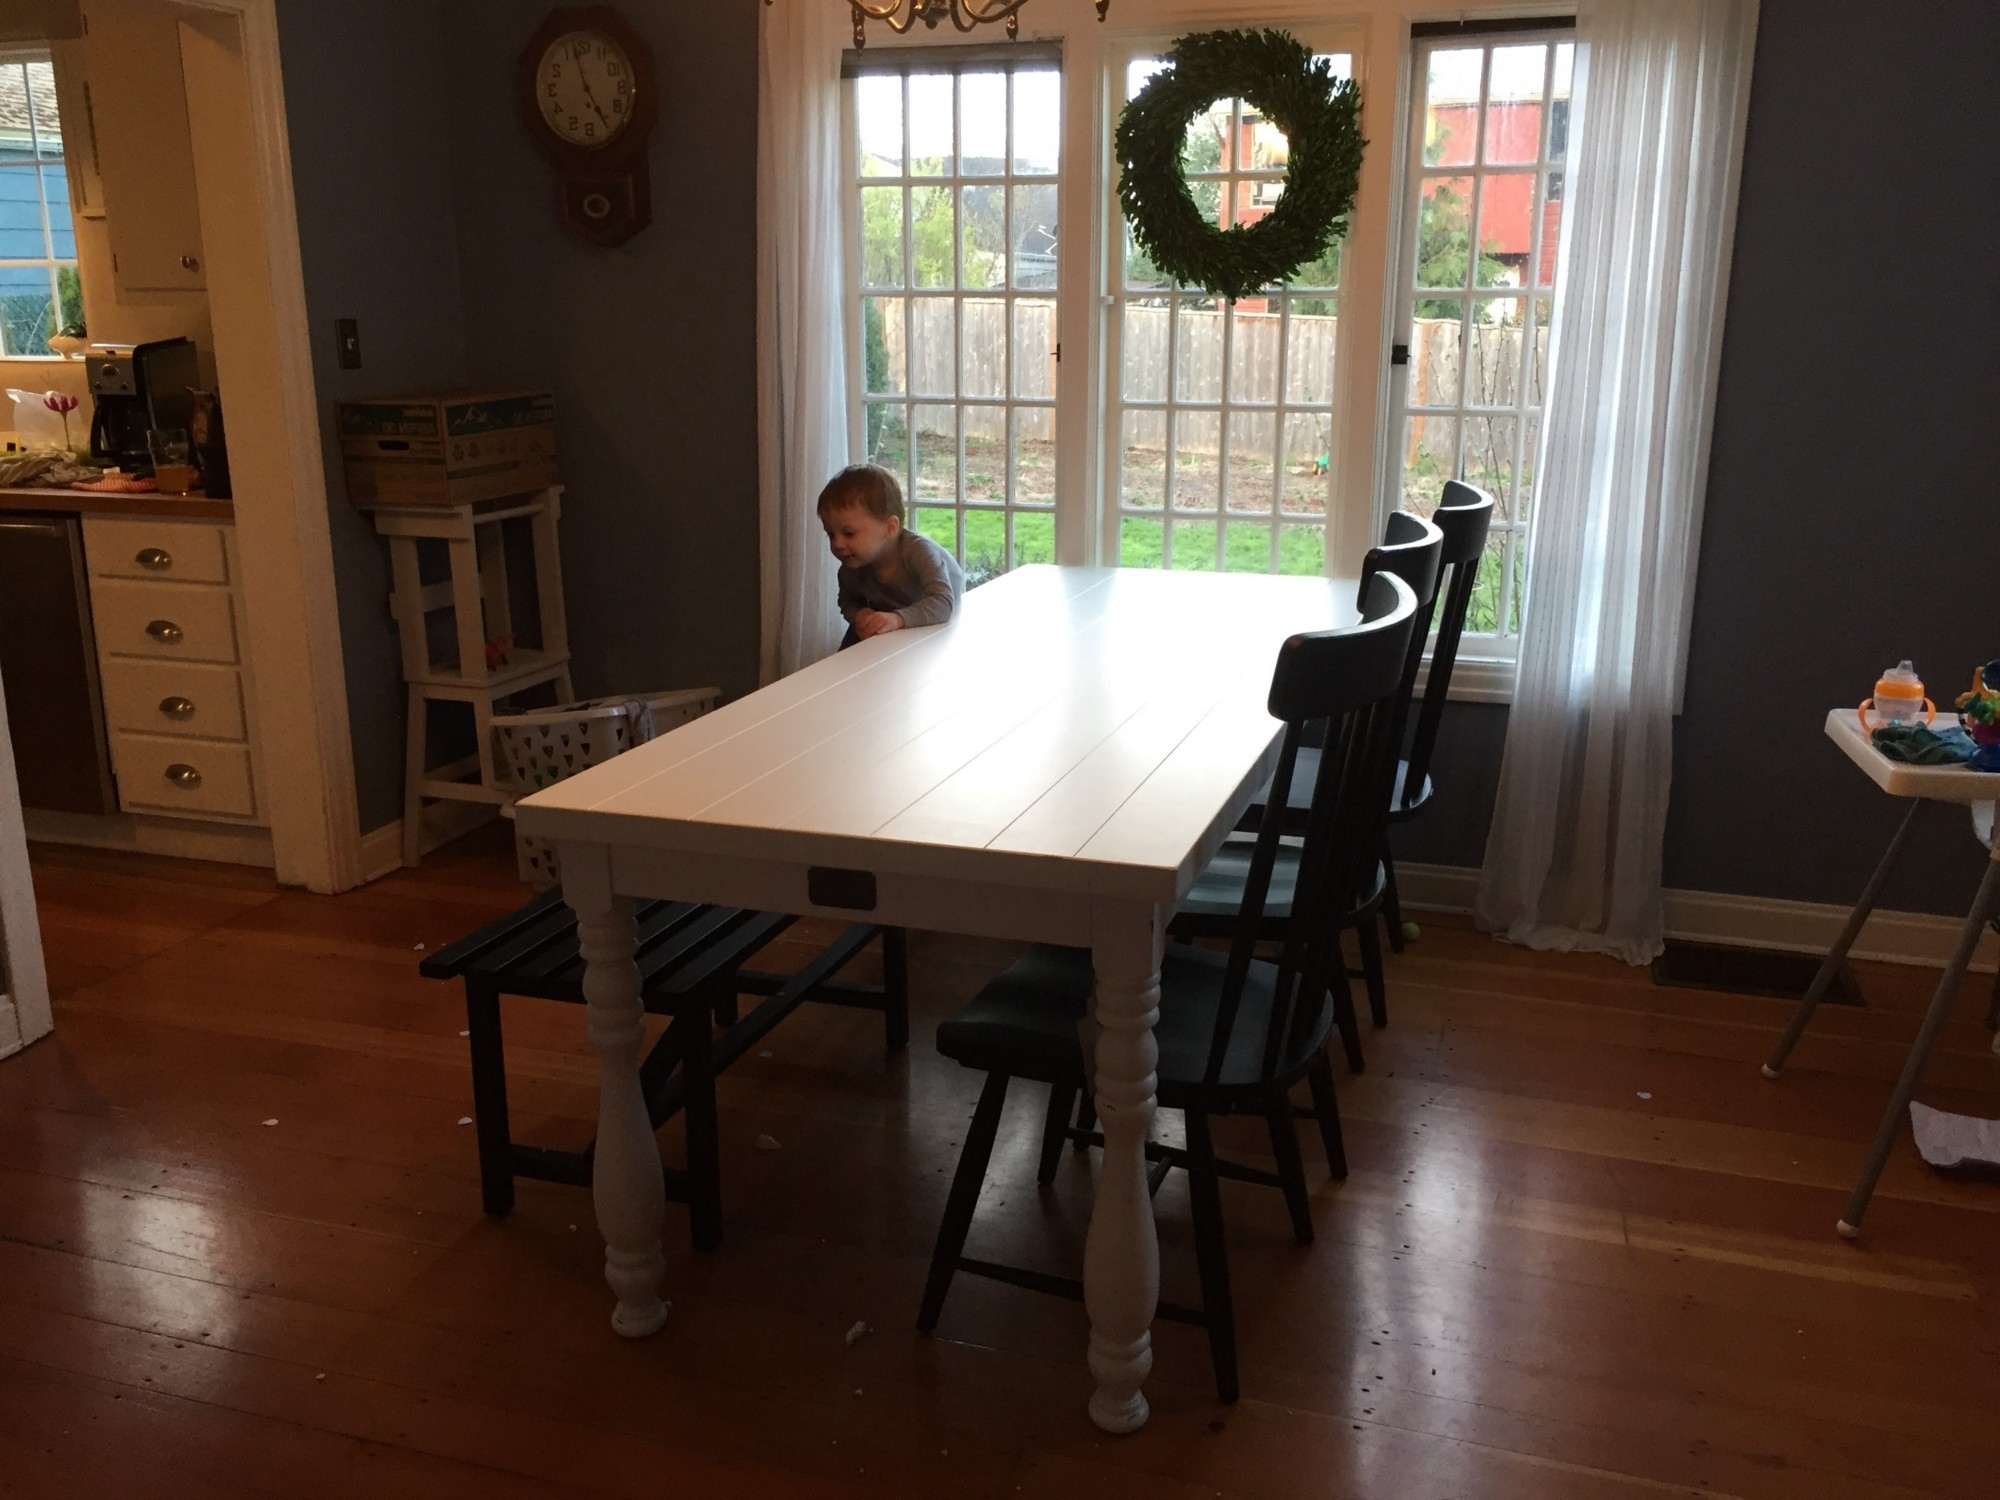 Magnolia Home Shop Floor Dining Tables With Iron Trestle With Regard To Most Recently Released Joanna Gaines' Magnolia Home Furniture Line — A Review (View 11 of 25)